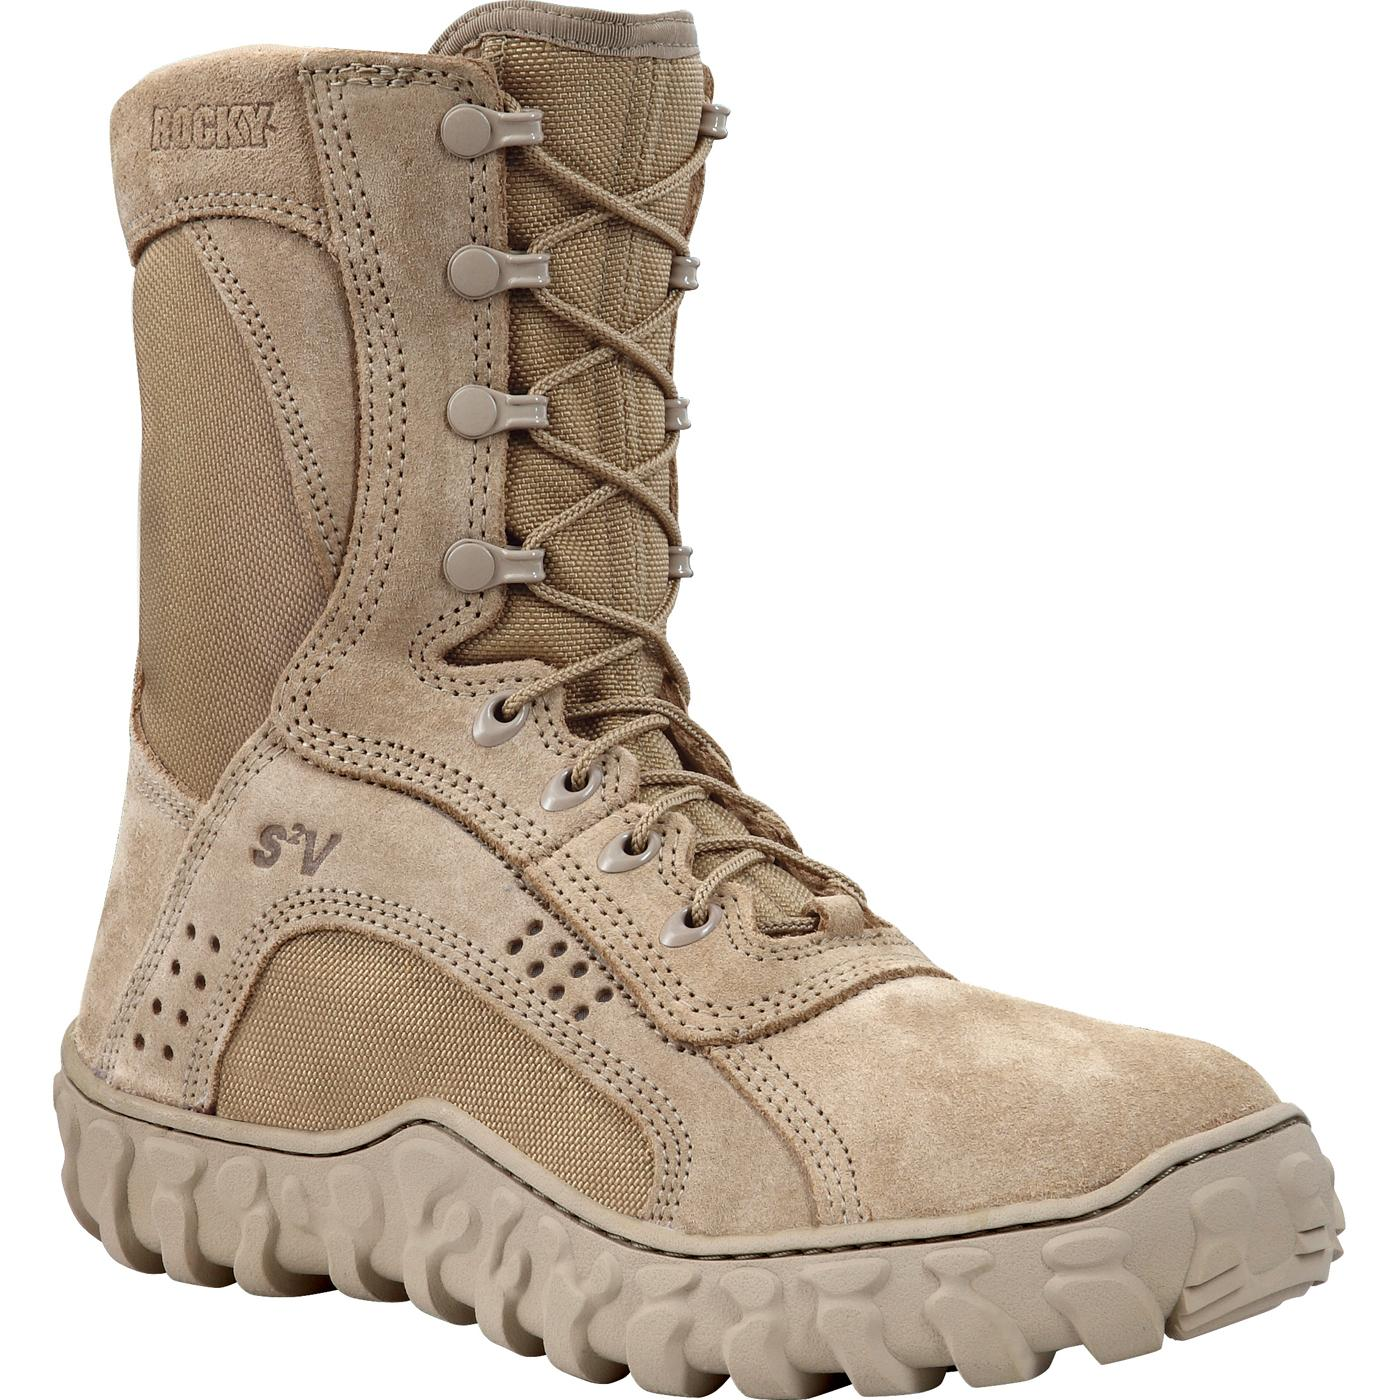 4 Advantages of Rocky S2V Military Combat Boots